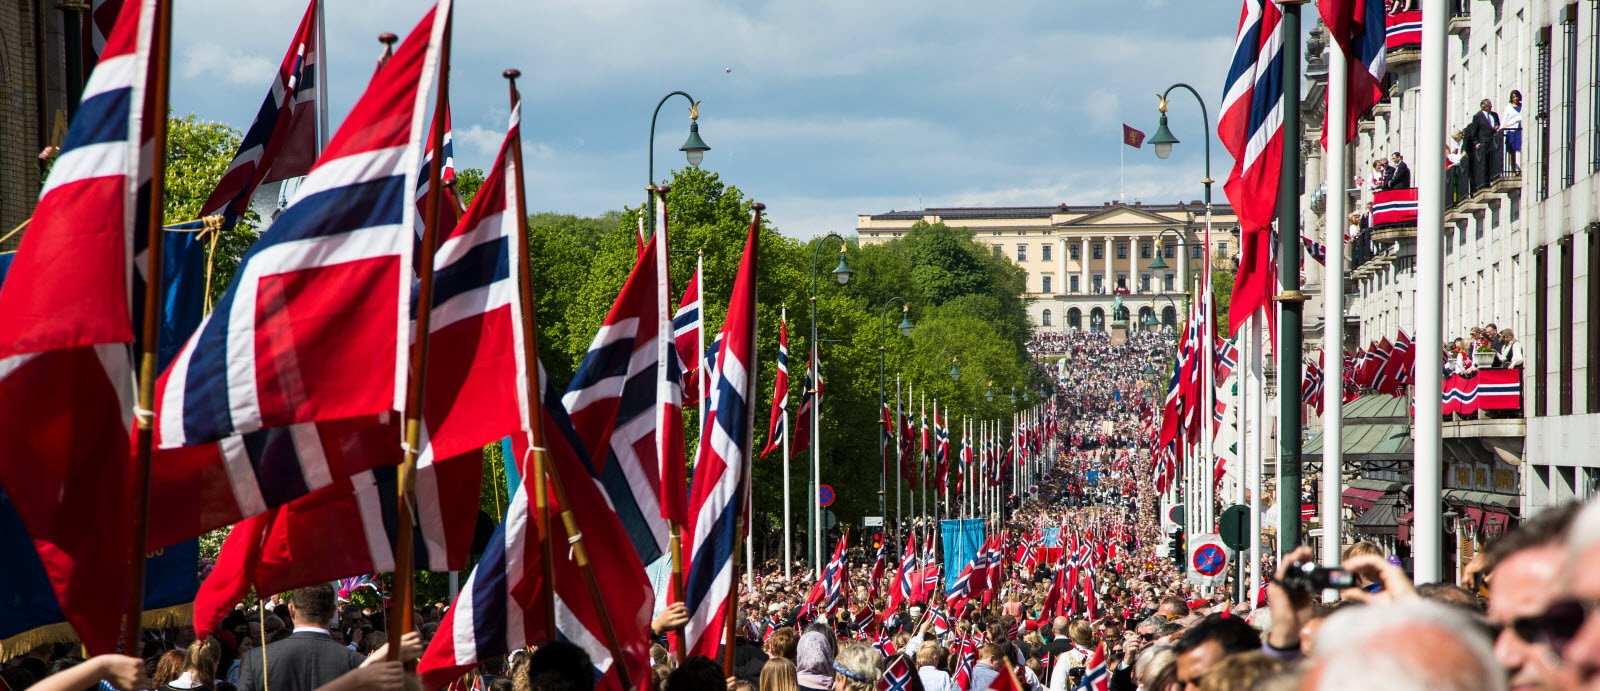 Asgeir Helgestad - Artic Light AS, Visitnorway.com